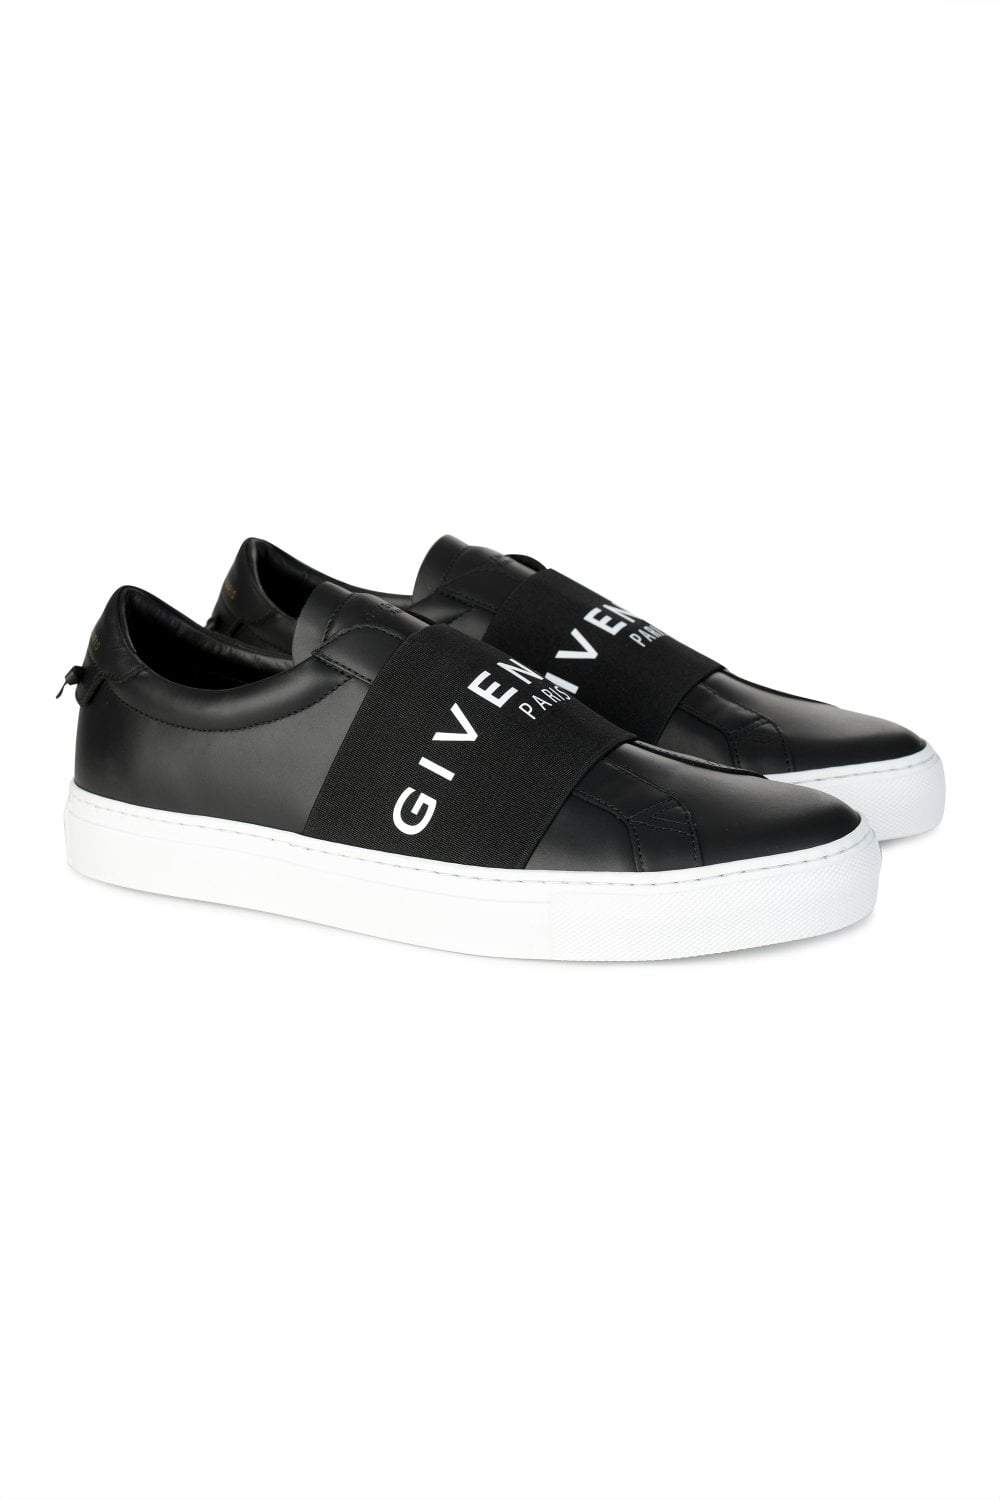 GIVENCHY Givenchy Paris Strap Sneakers